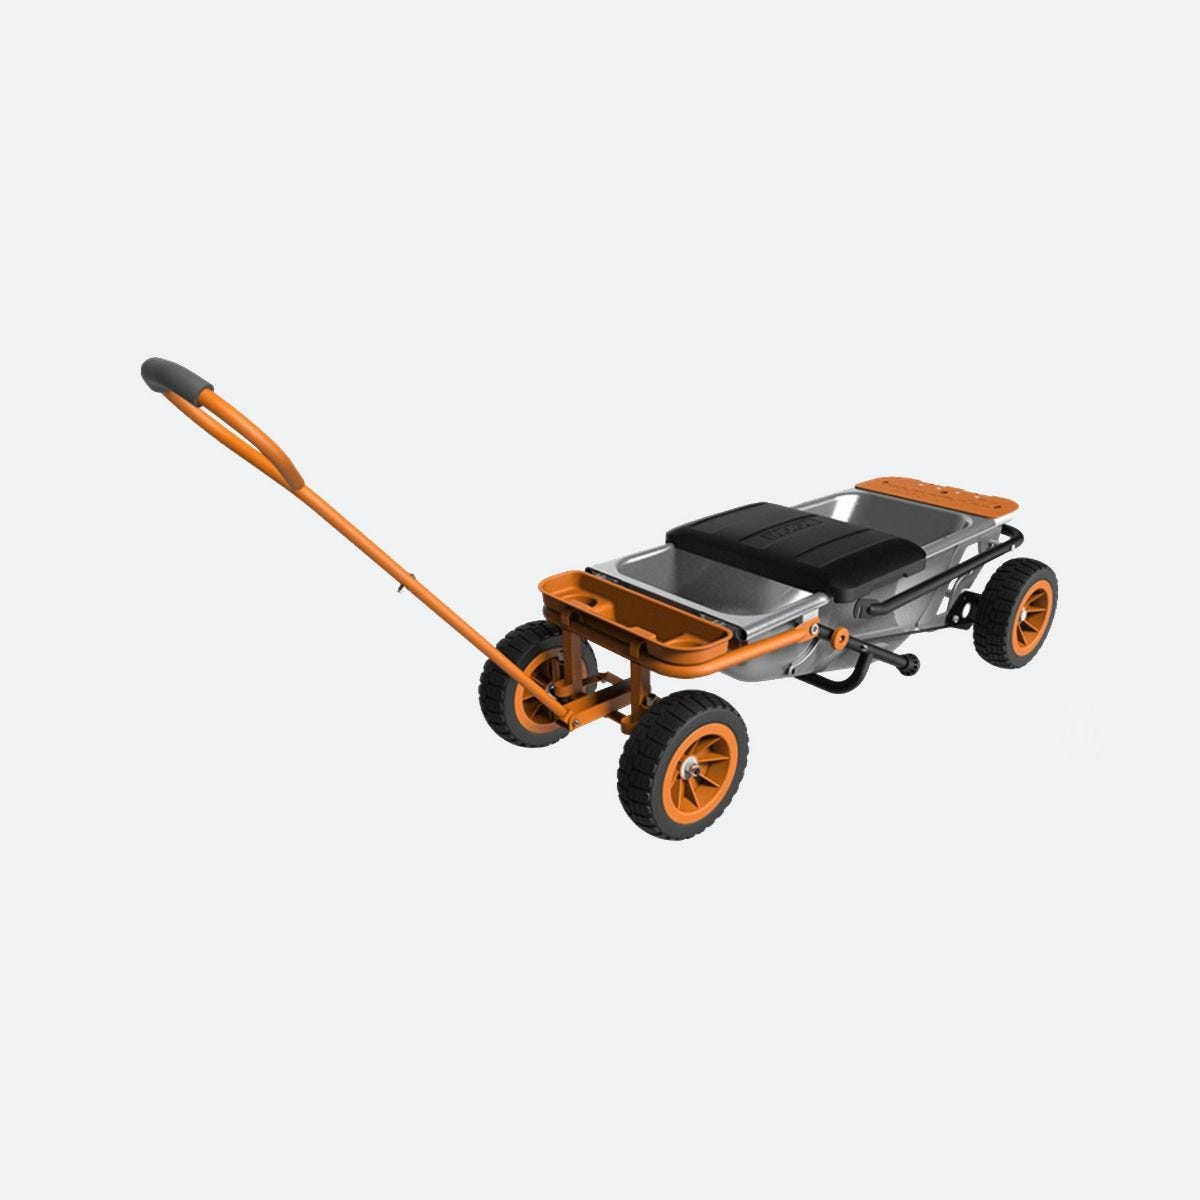 WORX Aerocart WG050 8-in-1 All Purpose Lifter//Carrier and Mover